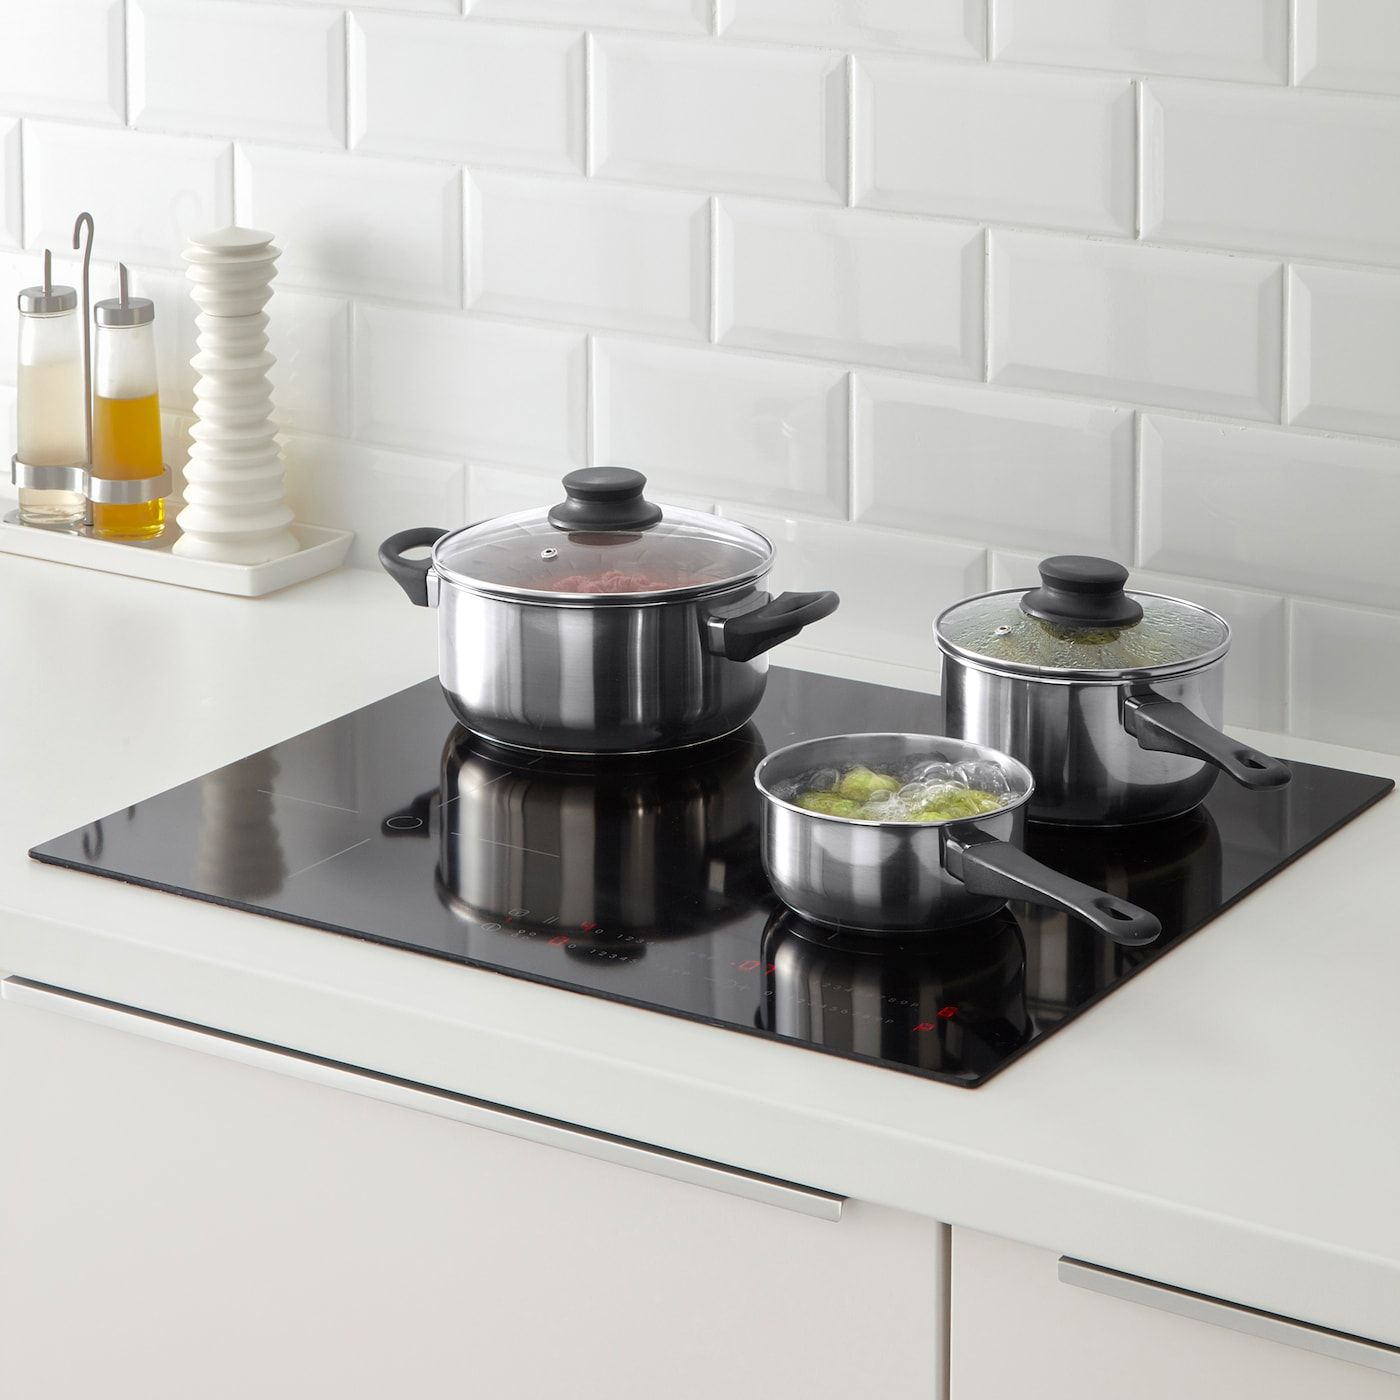 Ikea Annons 5 Piece Cookware Set Glass Stainless Steel In 2020